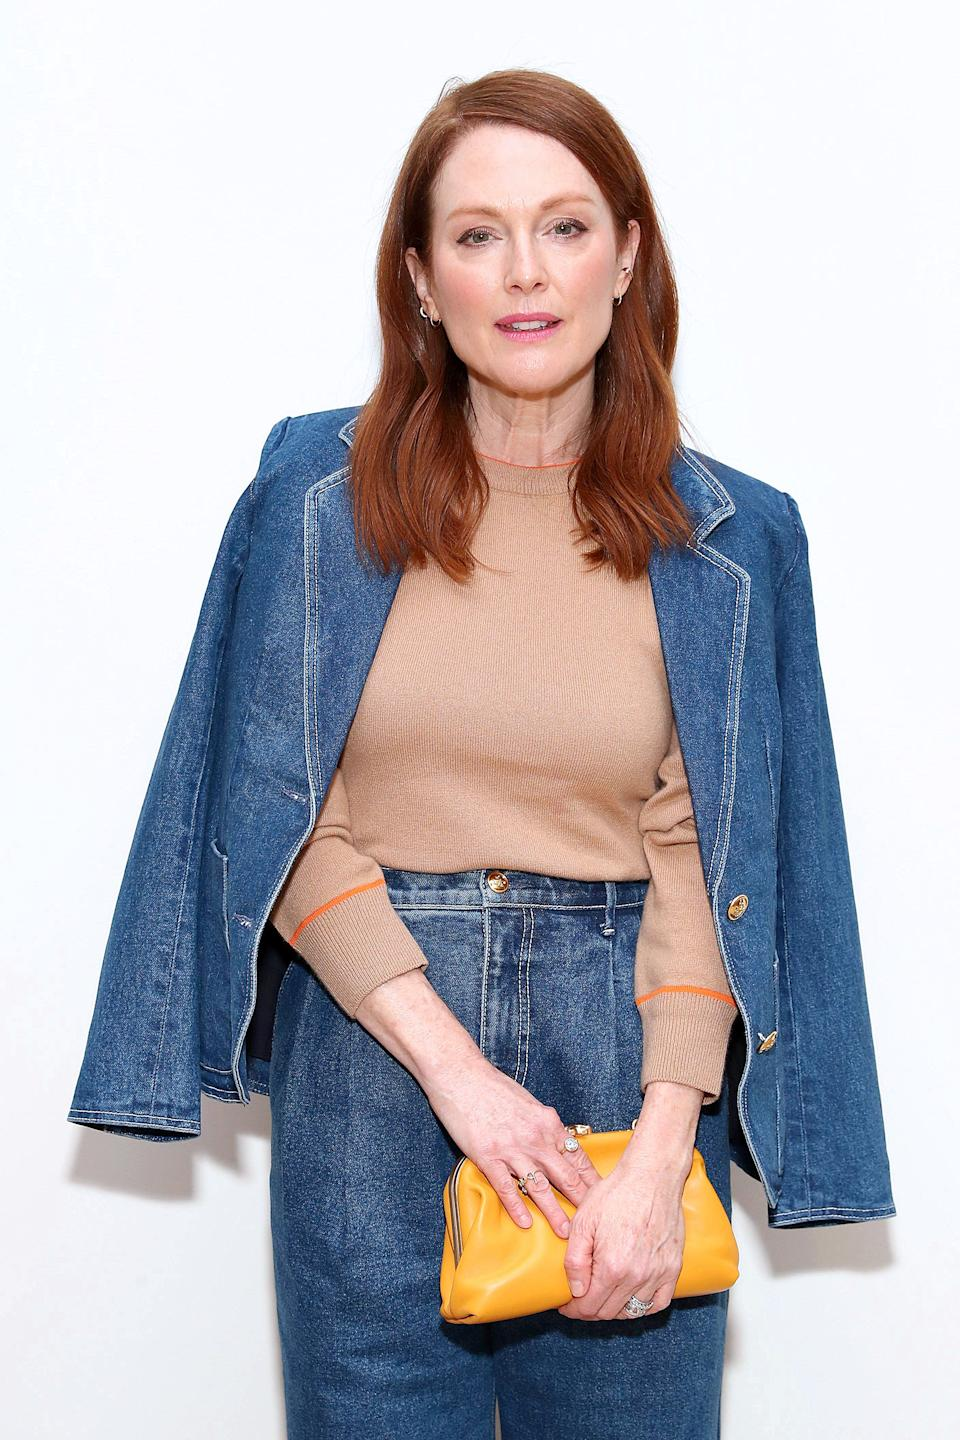 NEW YORK, NEW YORK - FEBRUARY 09: Julianne Moore attends the Tory Burch Fall Winter 2020 Fashion Show at Sotheby's on February 09, 2020 in New York City. (Photo by Cindy Ord/Getty Images for Tory Burch)